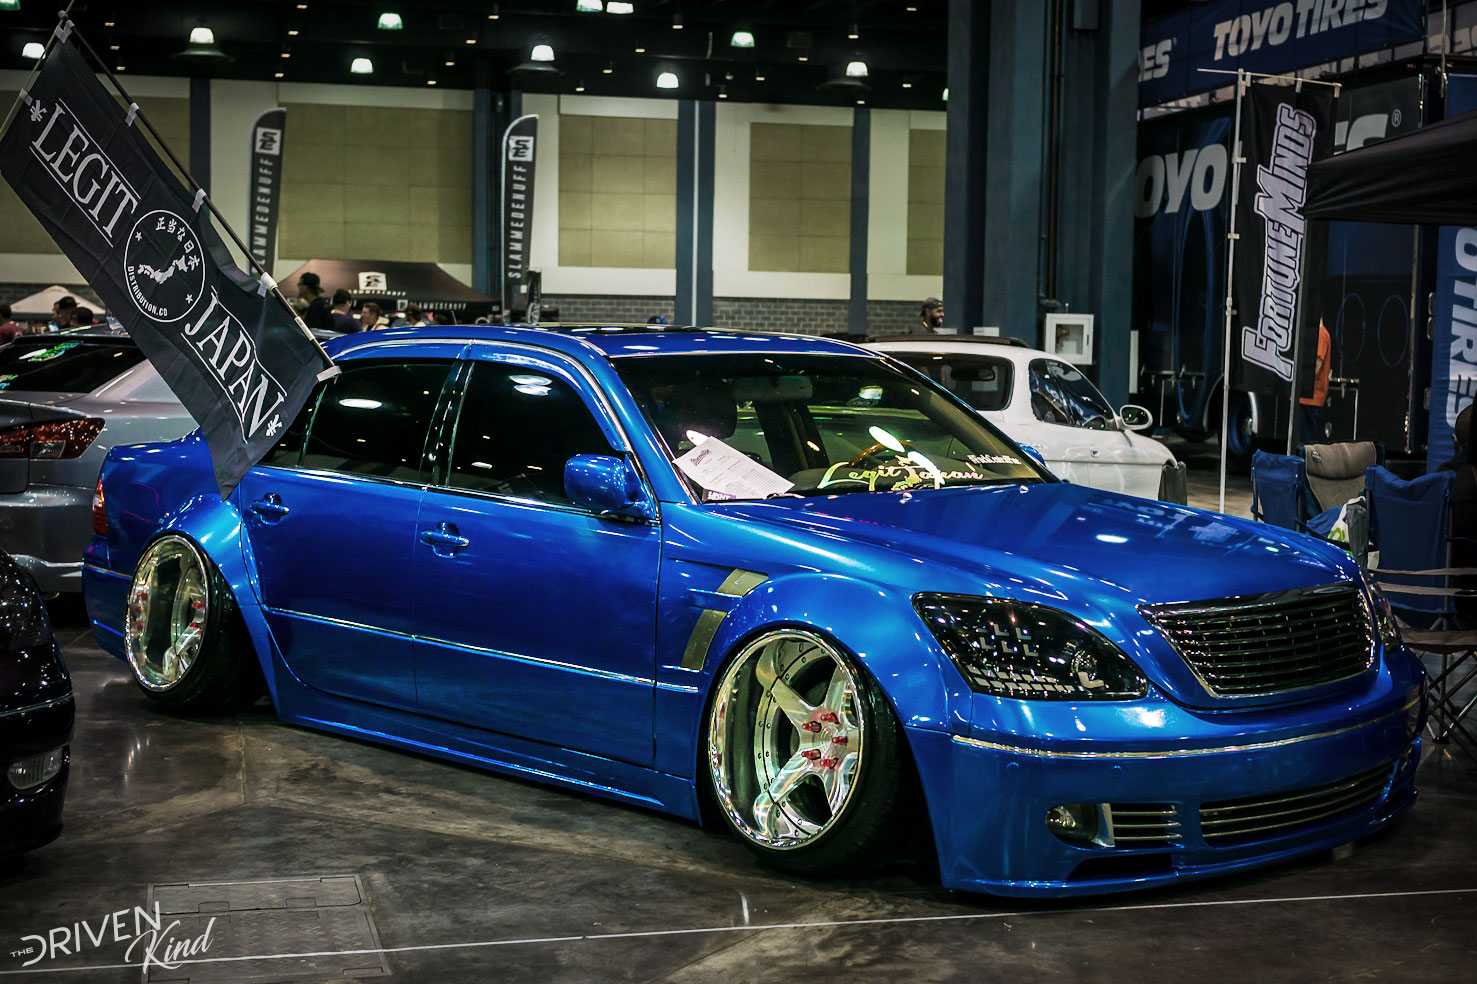 Lexus LS430 STANCENATION FLORIDA PALM BEACH CONVENTION CENTER 2017 Pt. 1 The Driven Kind Coverage